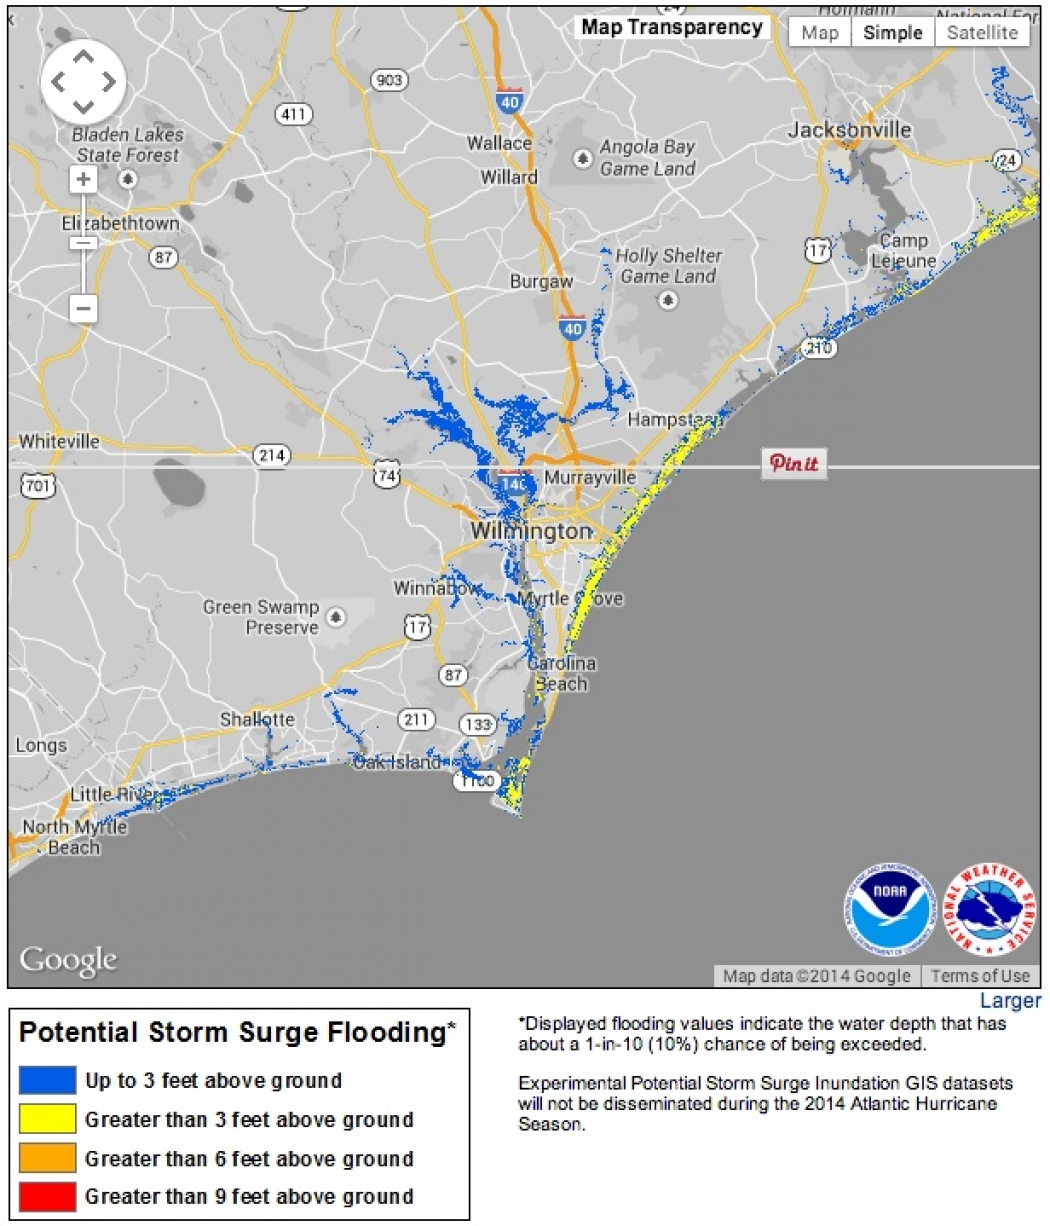 New Storm Surge Maps Debut With TS Arthur  Climate Central